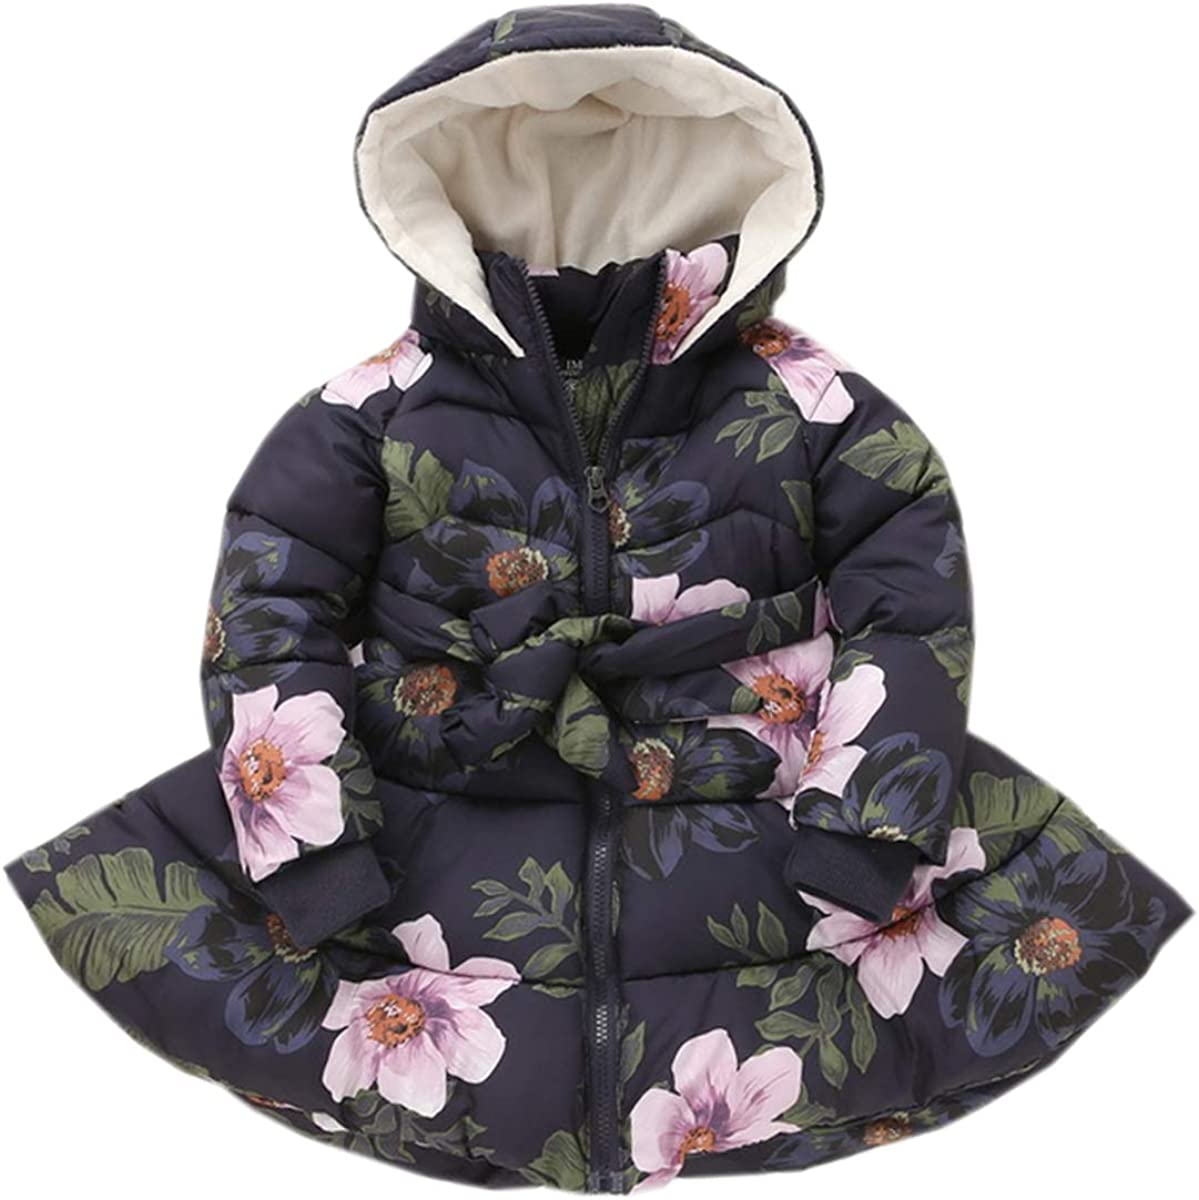 DAIMIDY Girls' Flower Print Bowknot Winter Jacket Hooded New sales Superior Coat 2